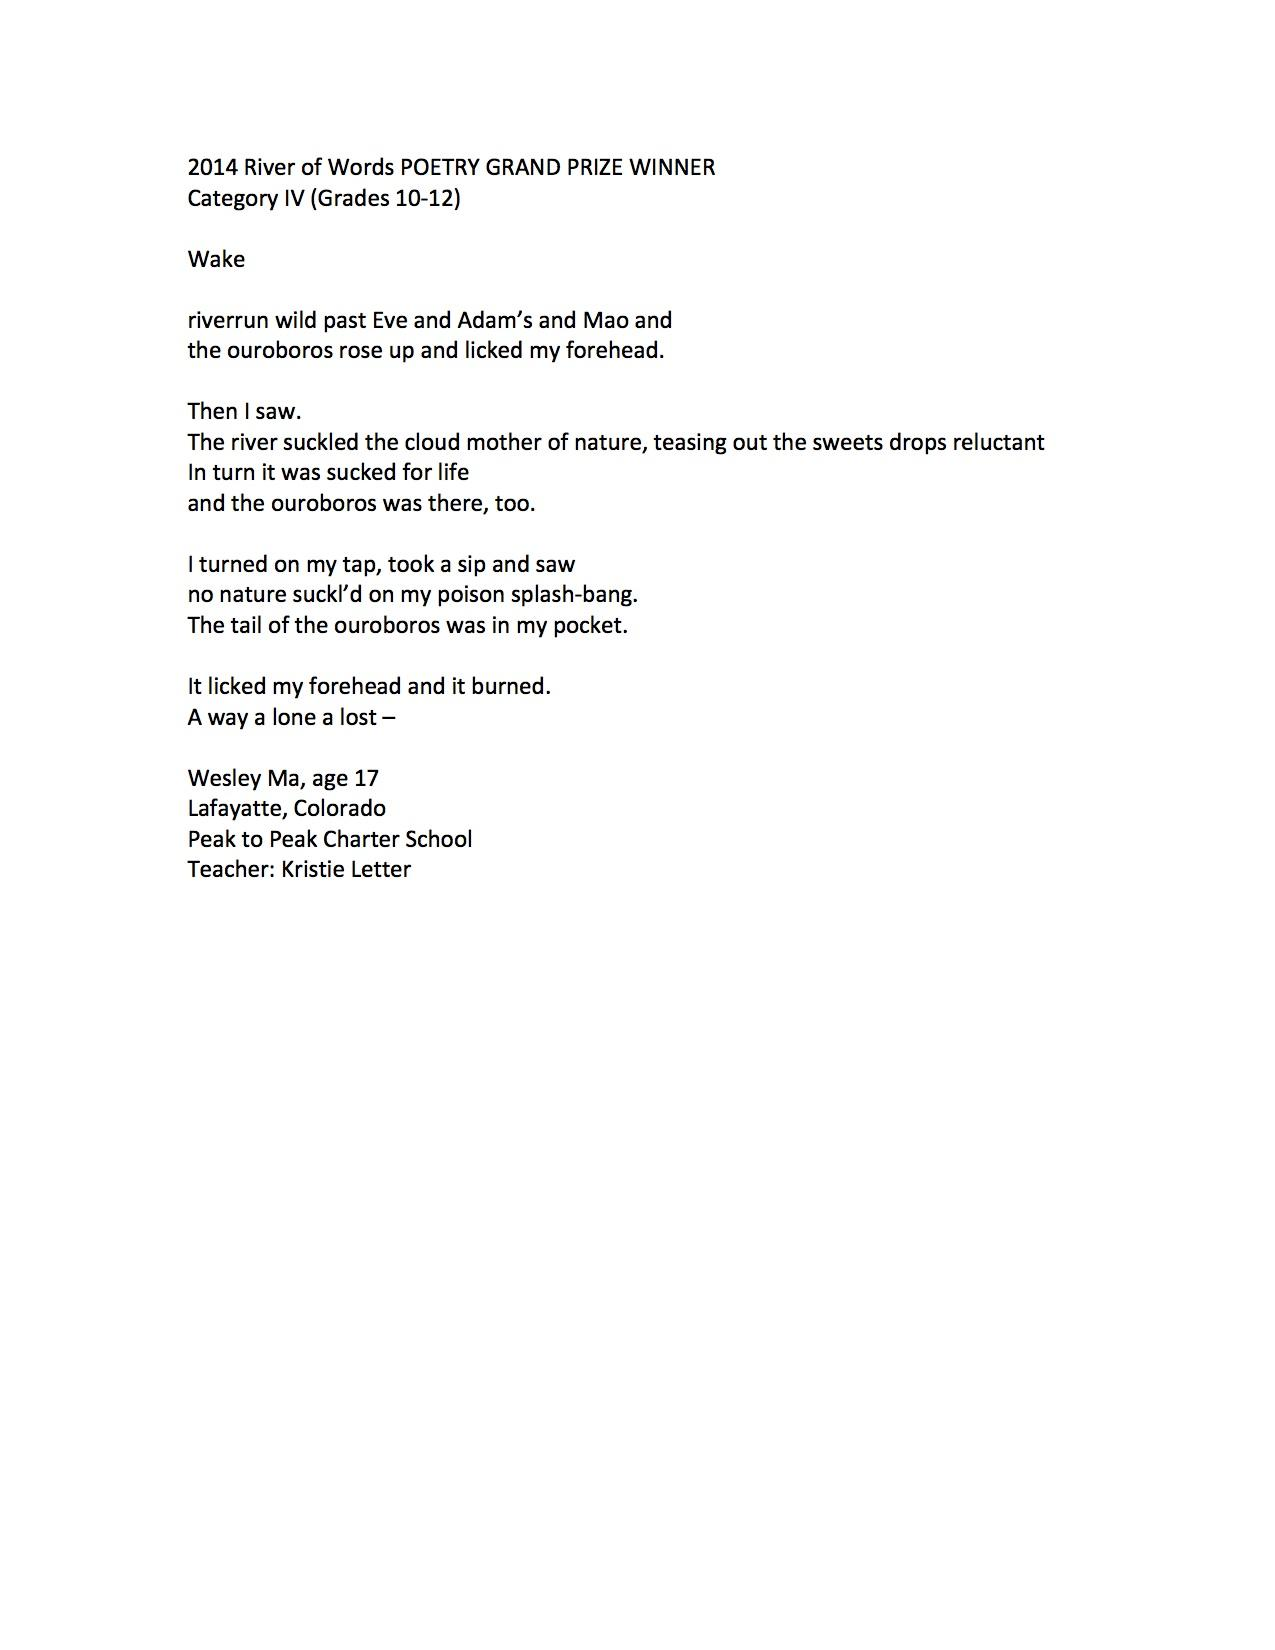 """Wake"" by Wesley Ma, Grand Prize Category IV